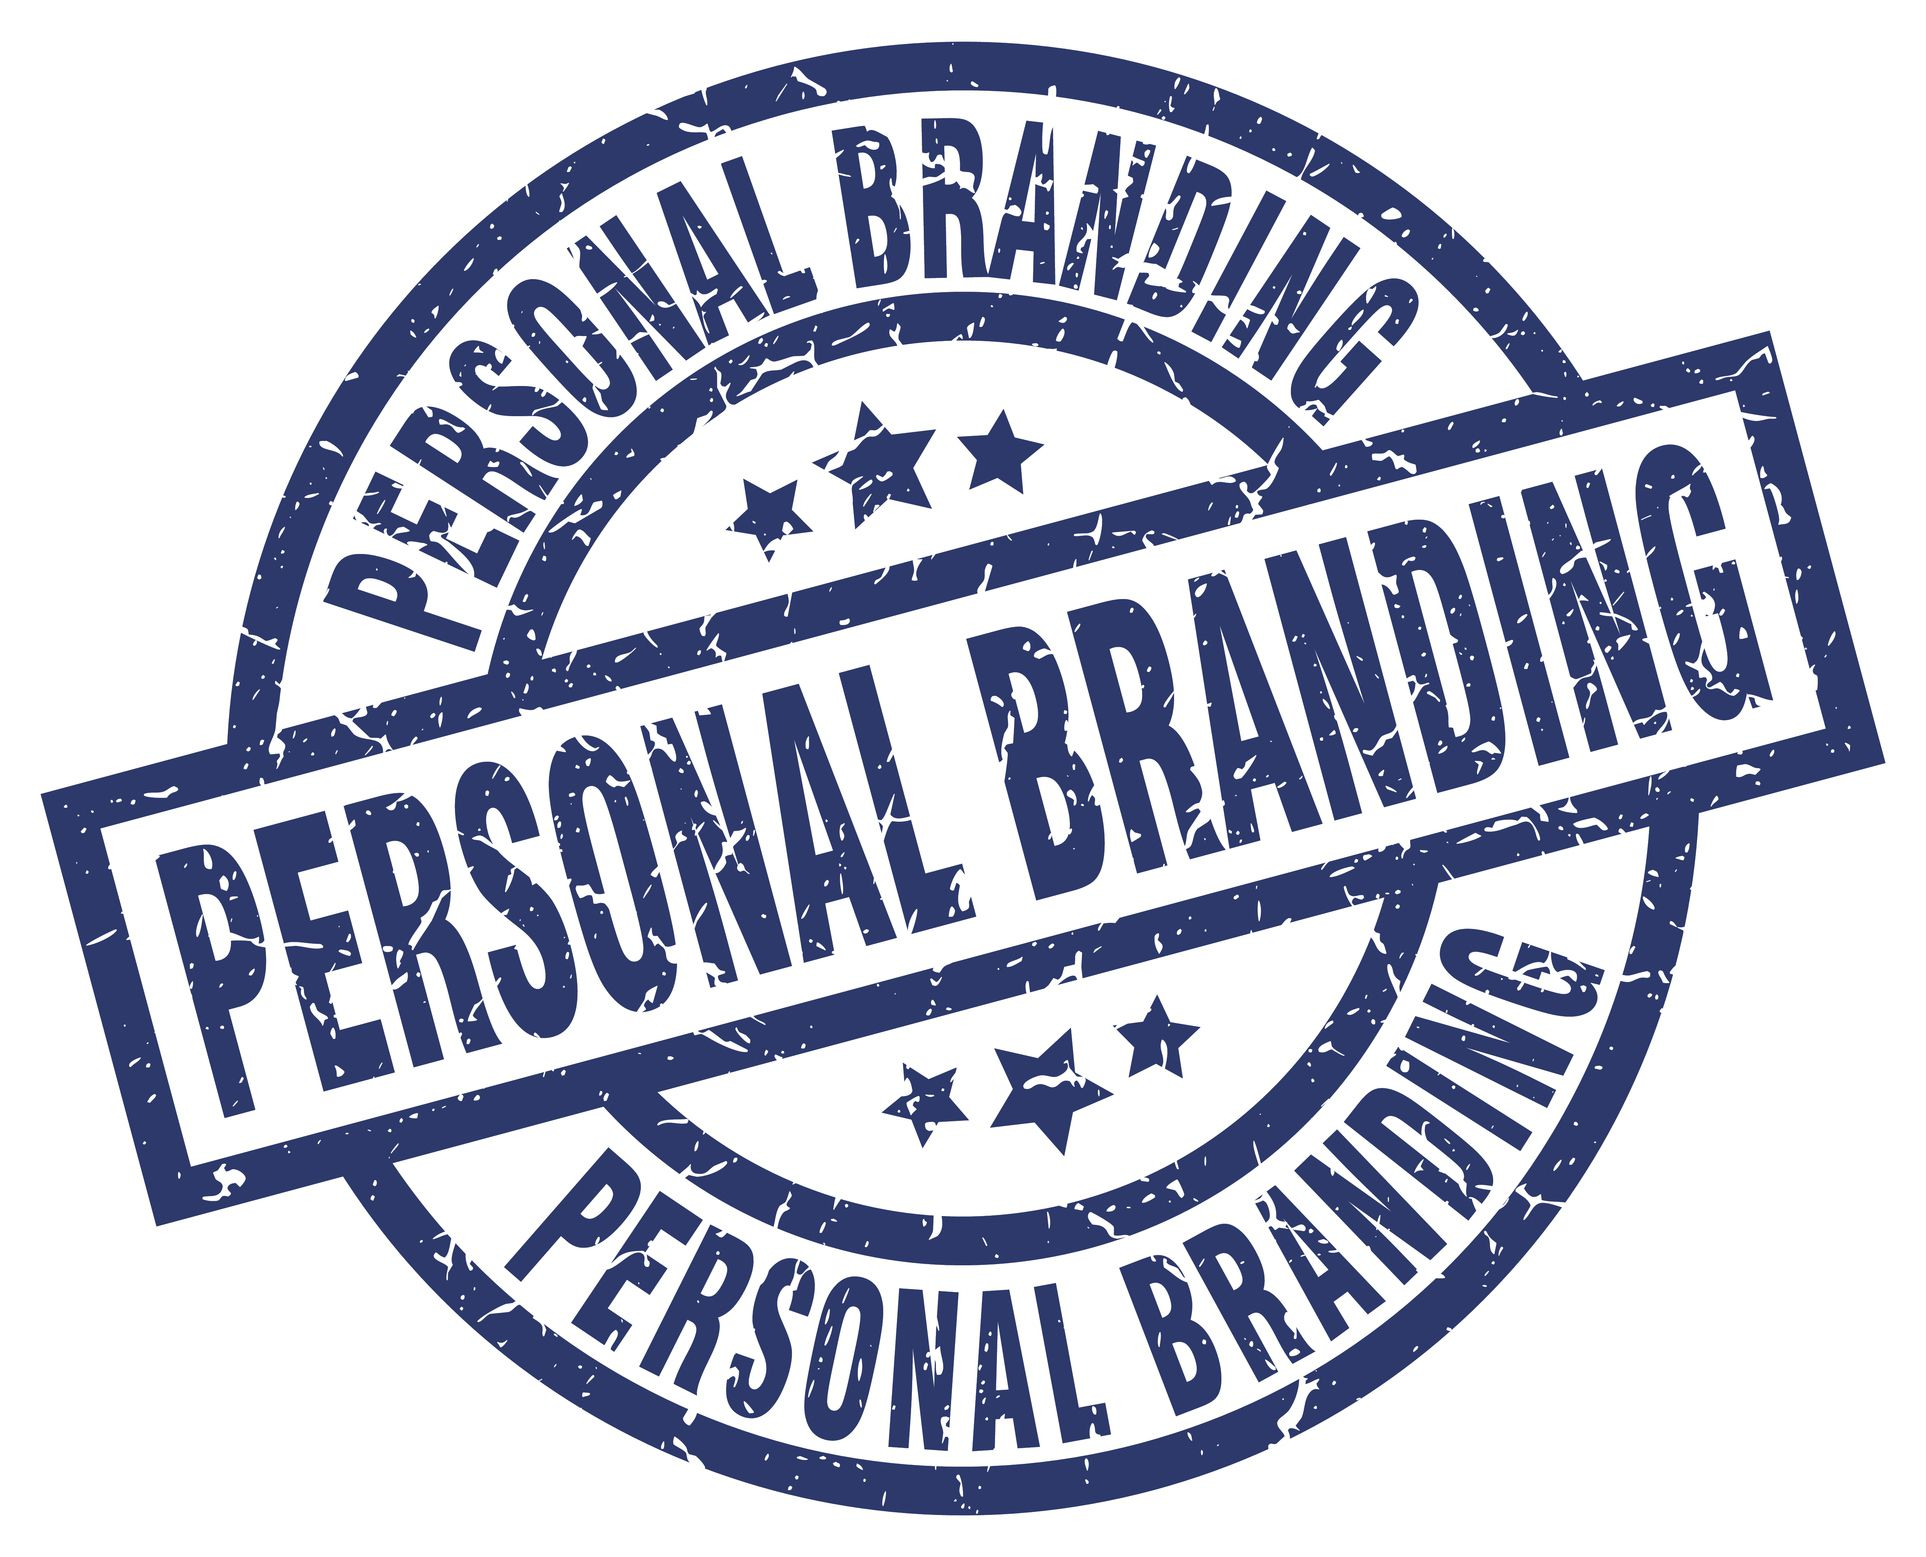 Tips on Creating and Growing Your Personal Brand